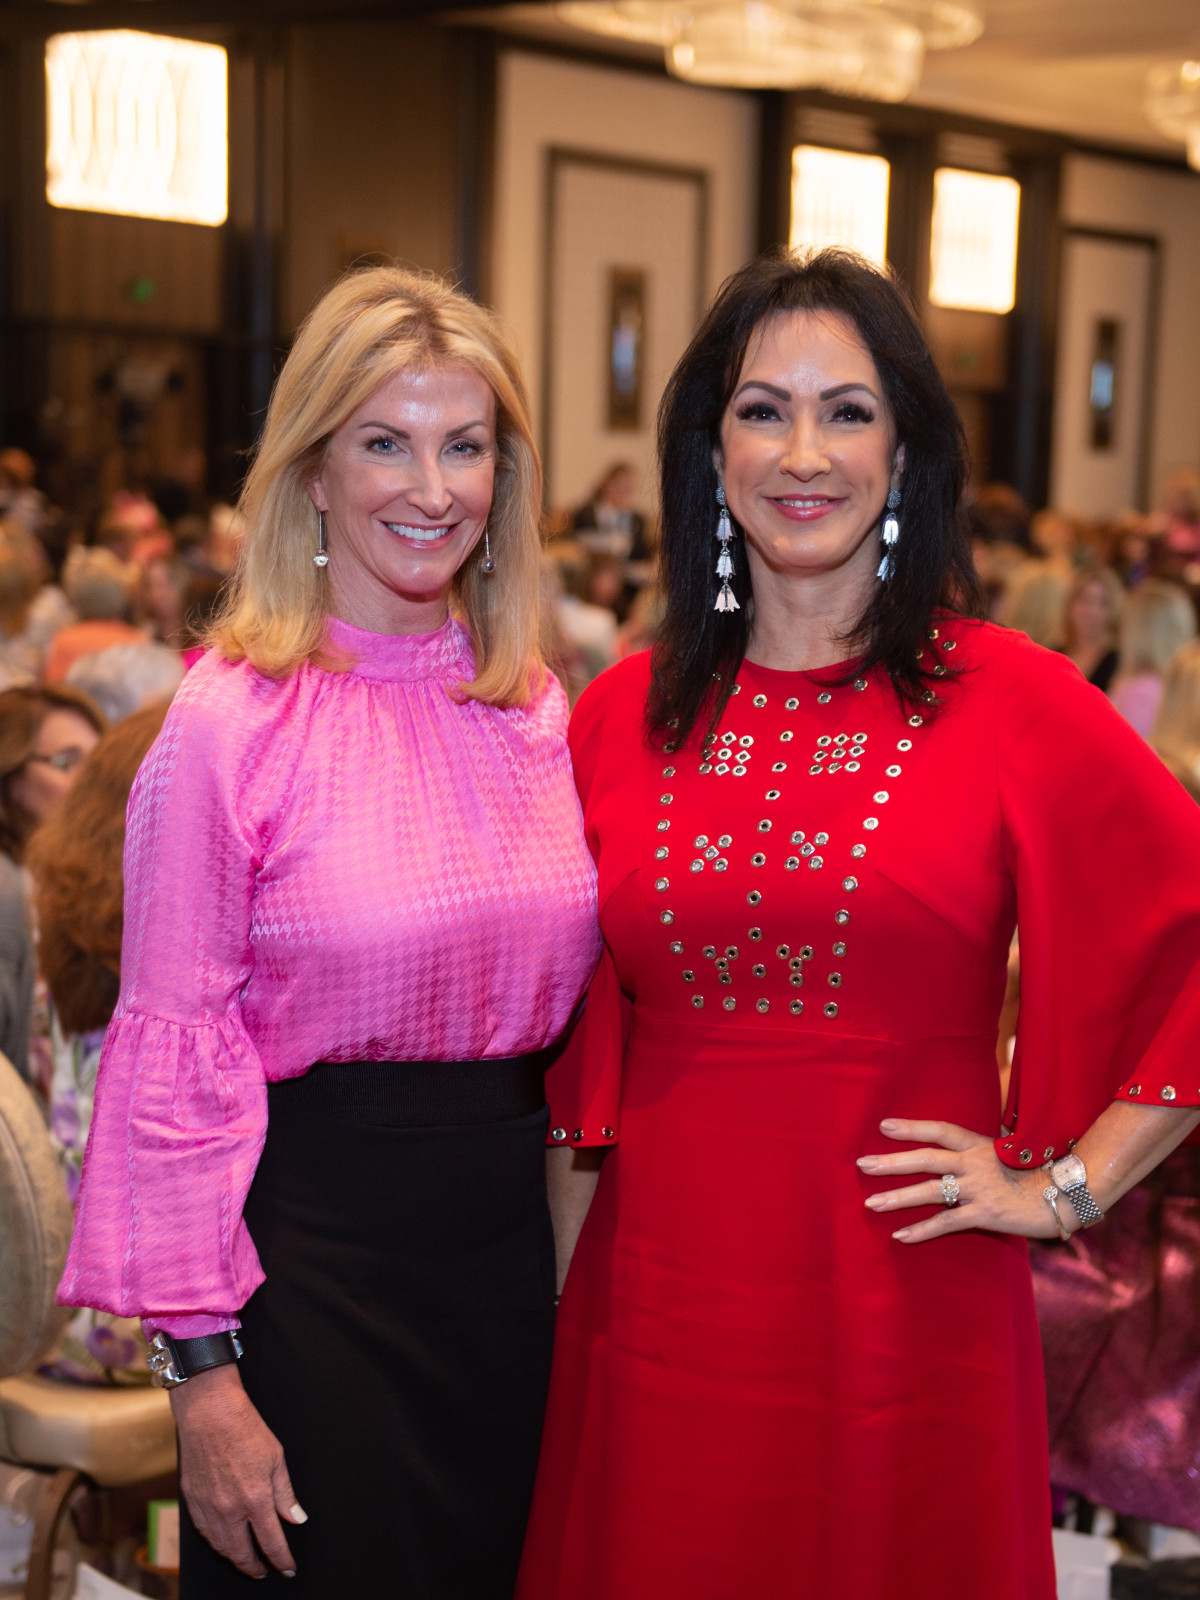 Razzle Dazzle Luncheon 2019 Alicia Smith Kim Moody